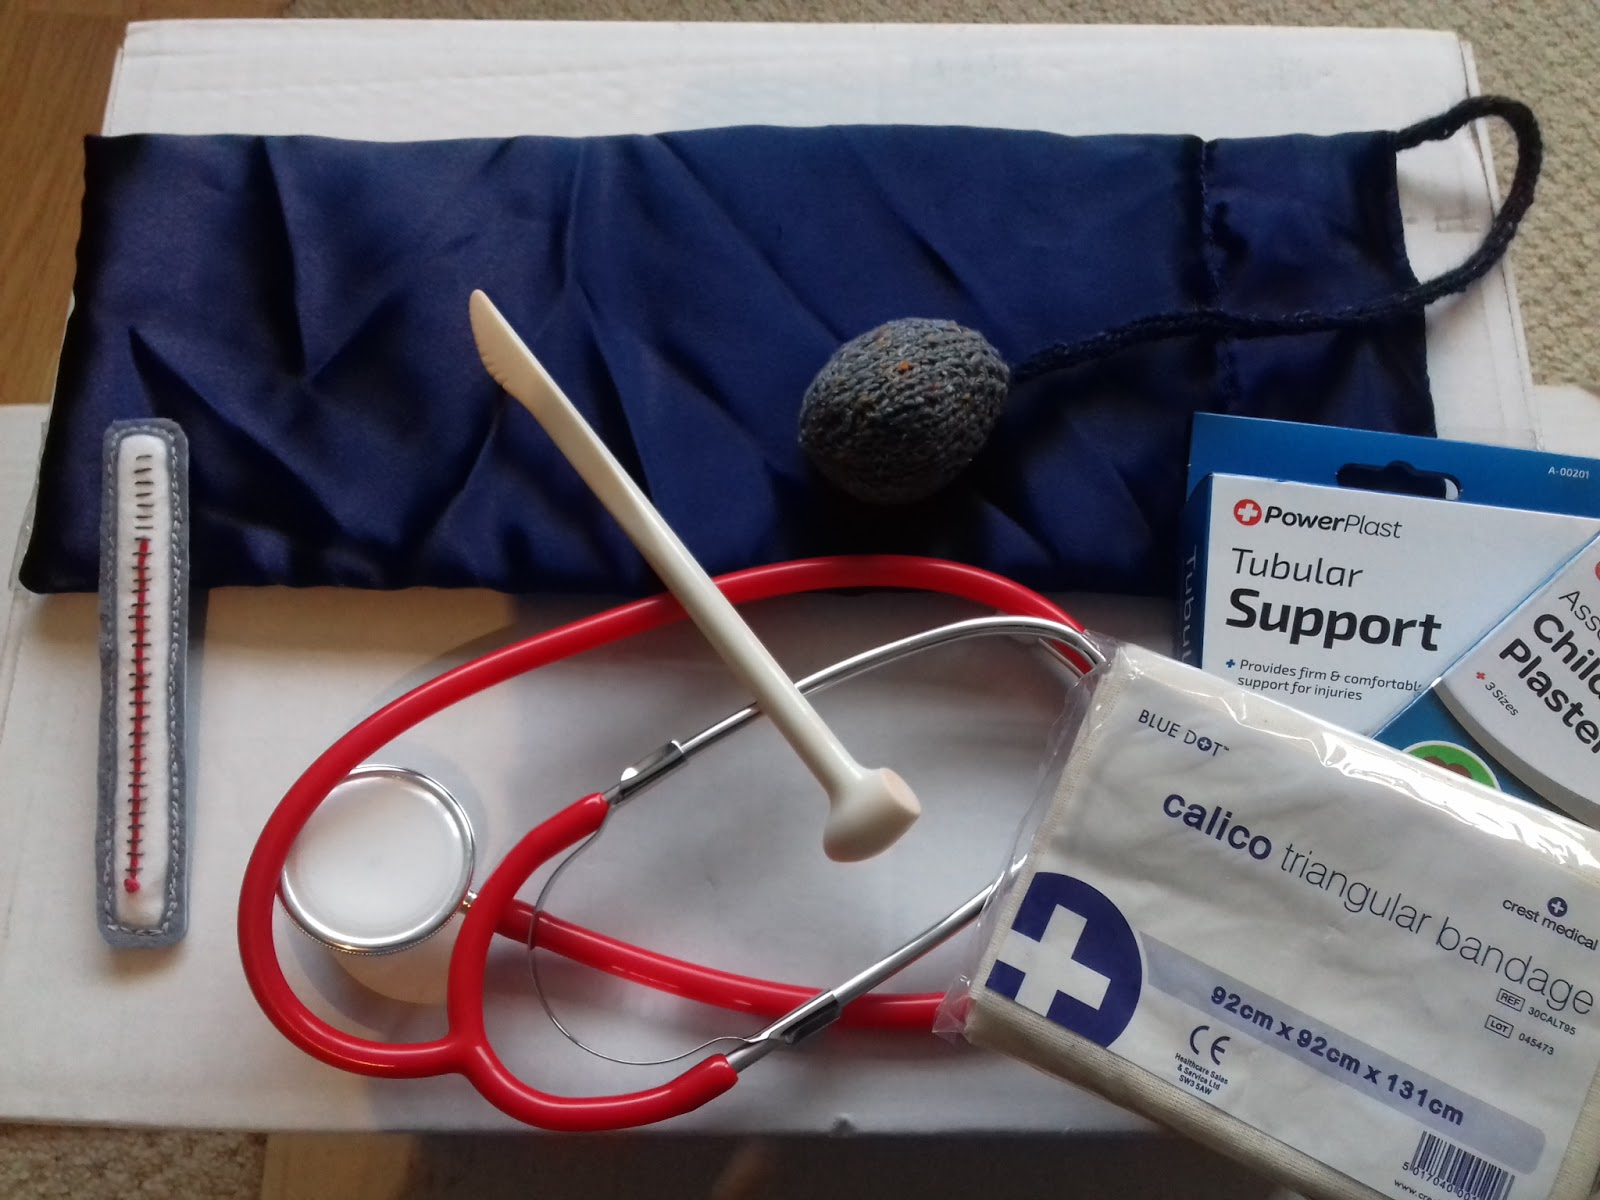 Child\'s medical kit and anatomy doll | Science "|1600|1200|?|en|2|301ef518548f4943c4f96bcdd41935dd|False|UNLIKELY|0.28380224108695984